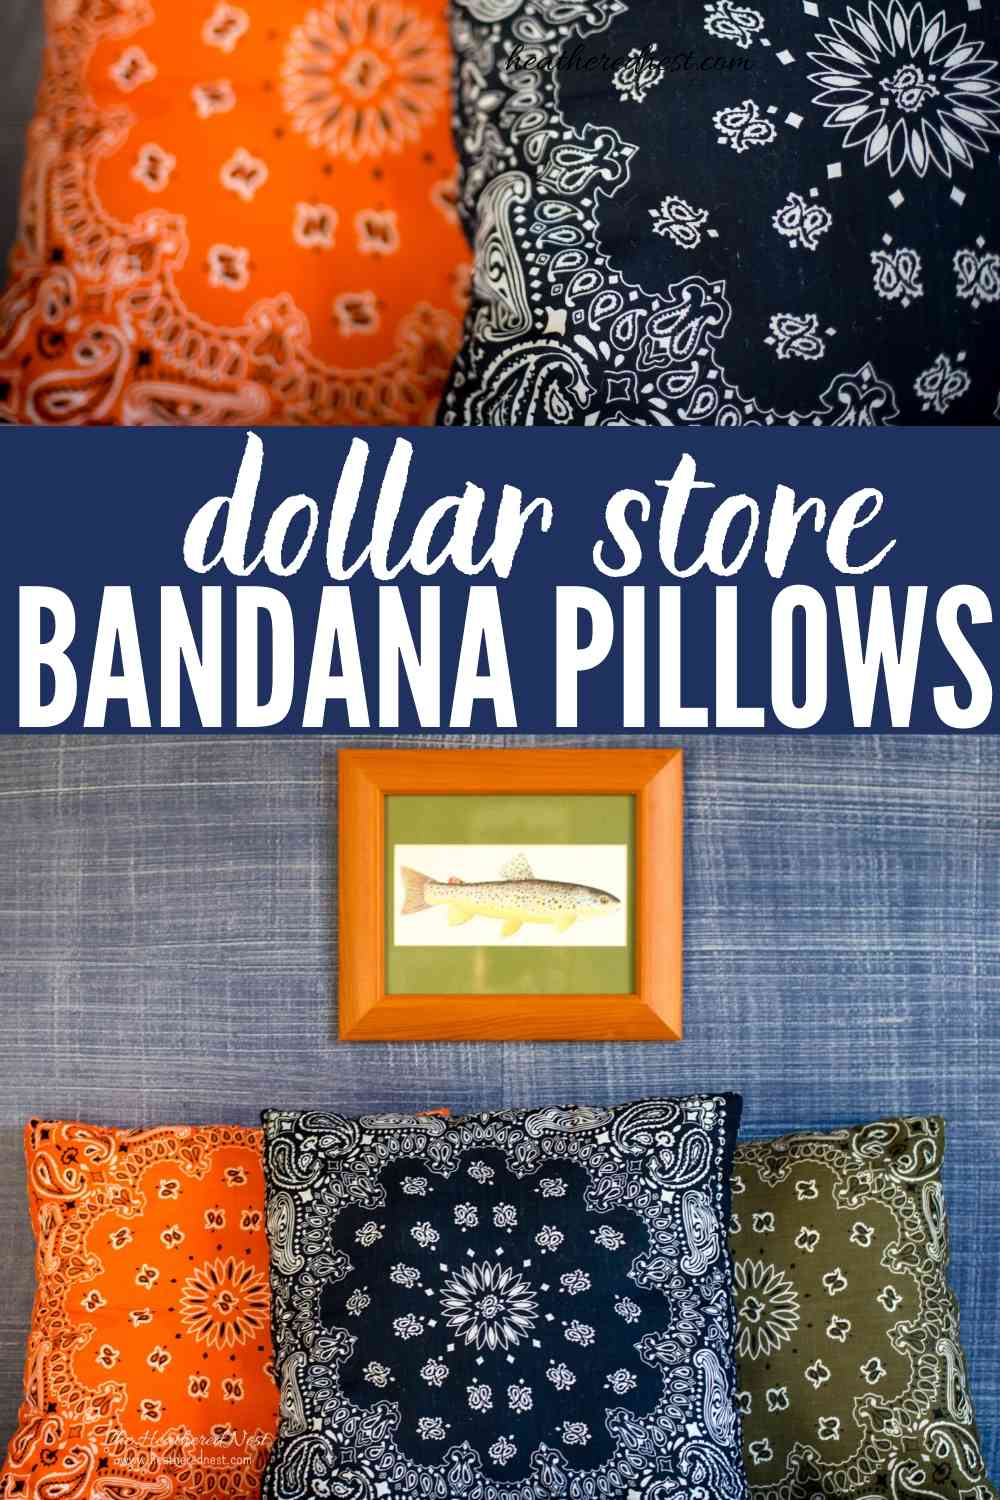 Popular & affordable DIY bandana pillows! Great for indoors or outdoors